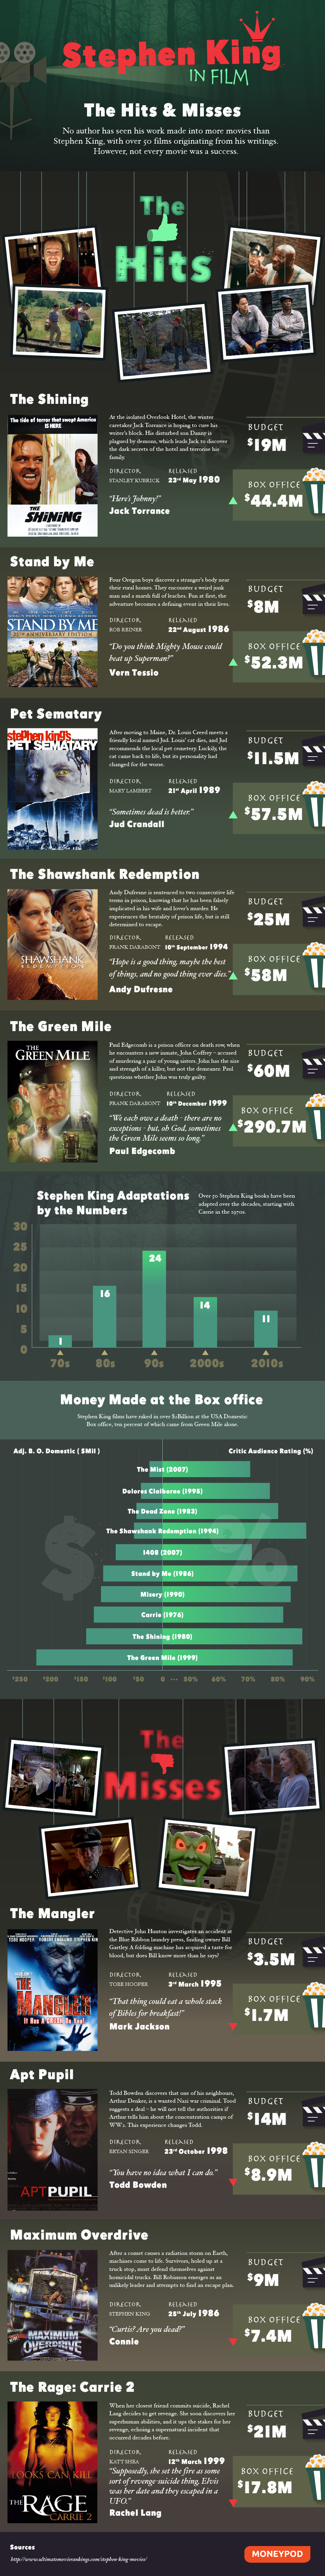 Infographic: Stephen King - His Biggest Box Office Hits & Misses